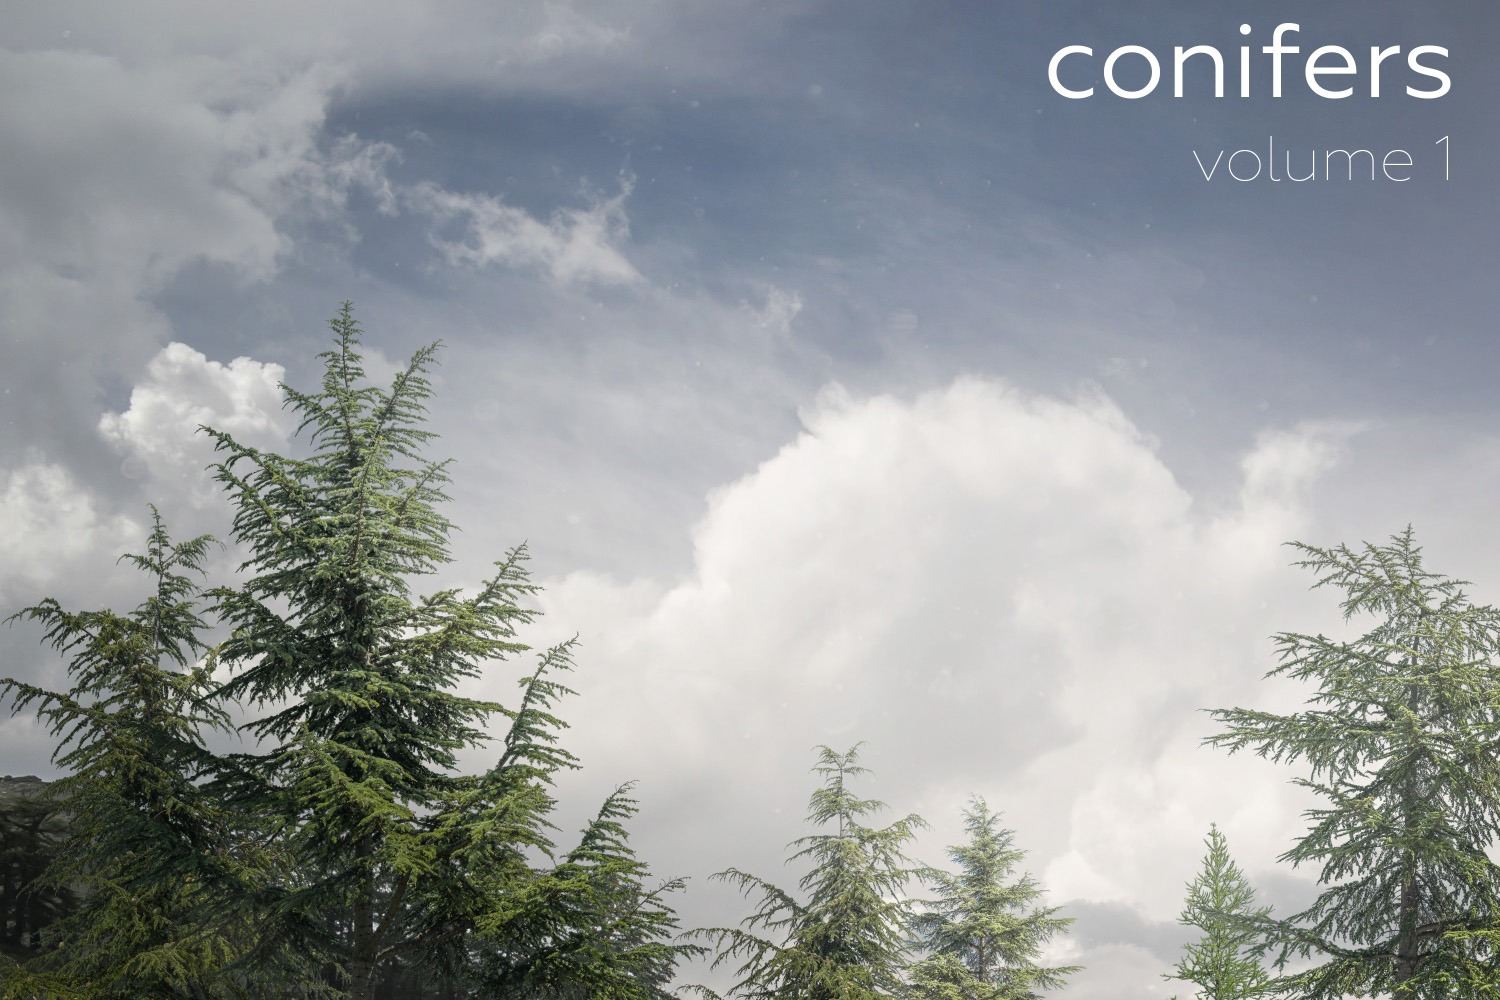 CONIFERS Volume 1